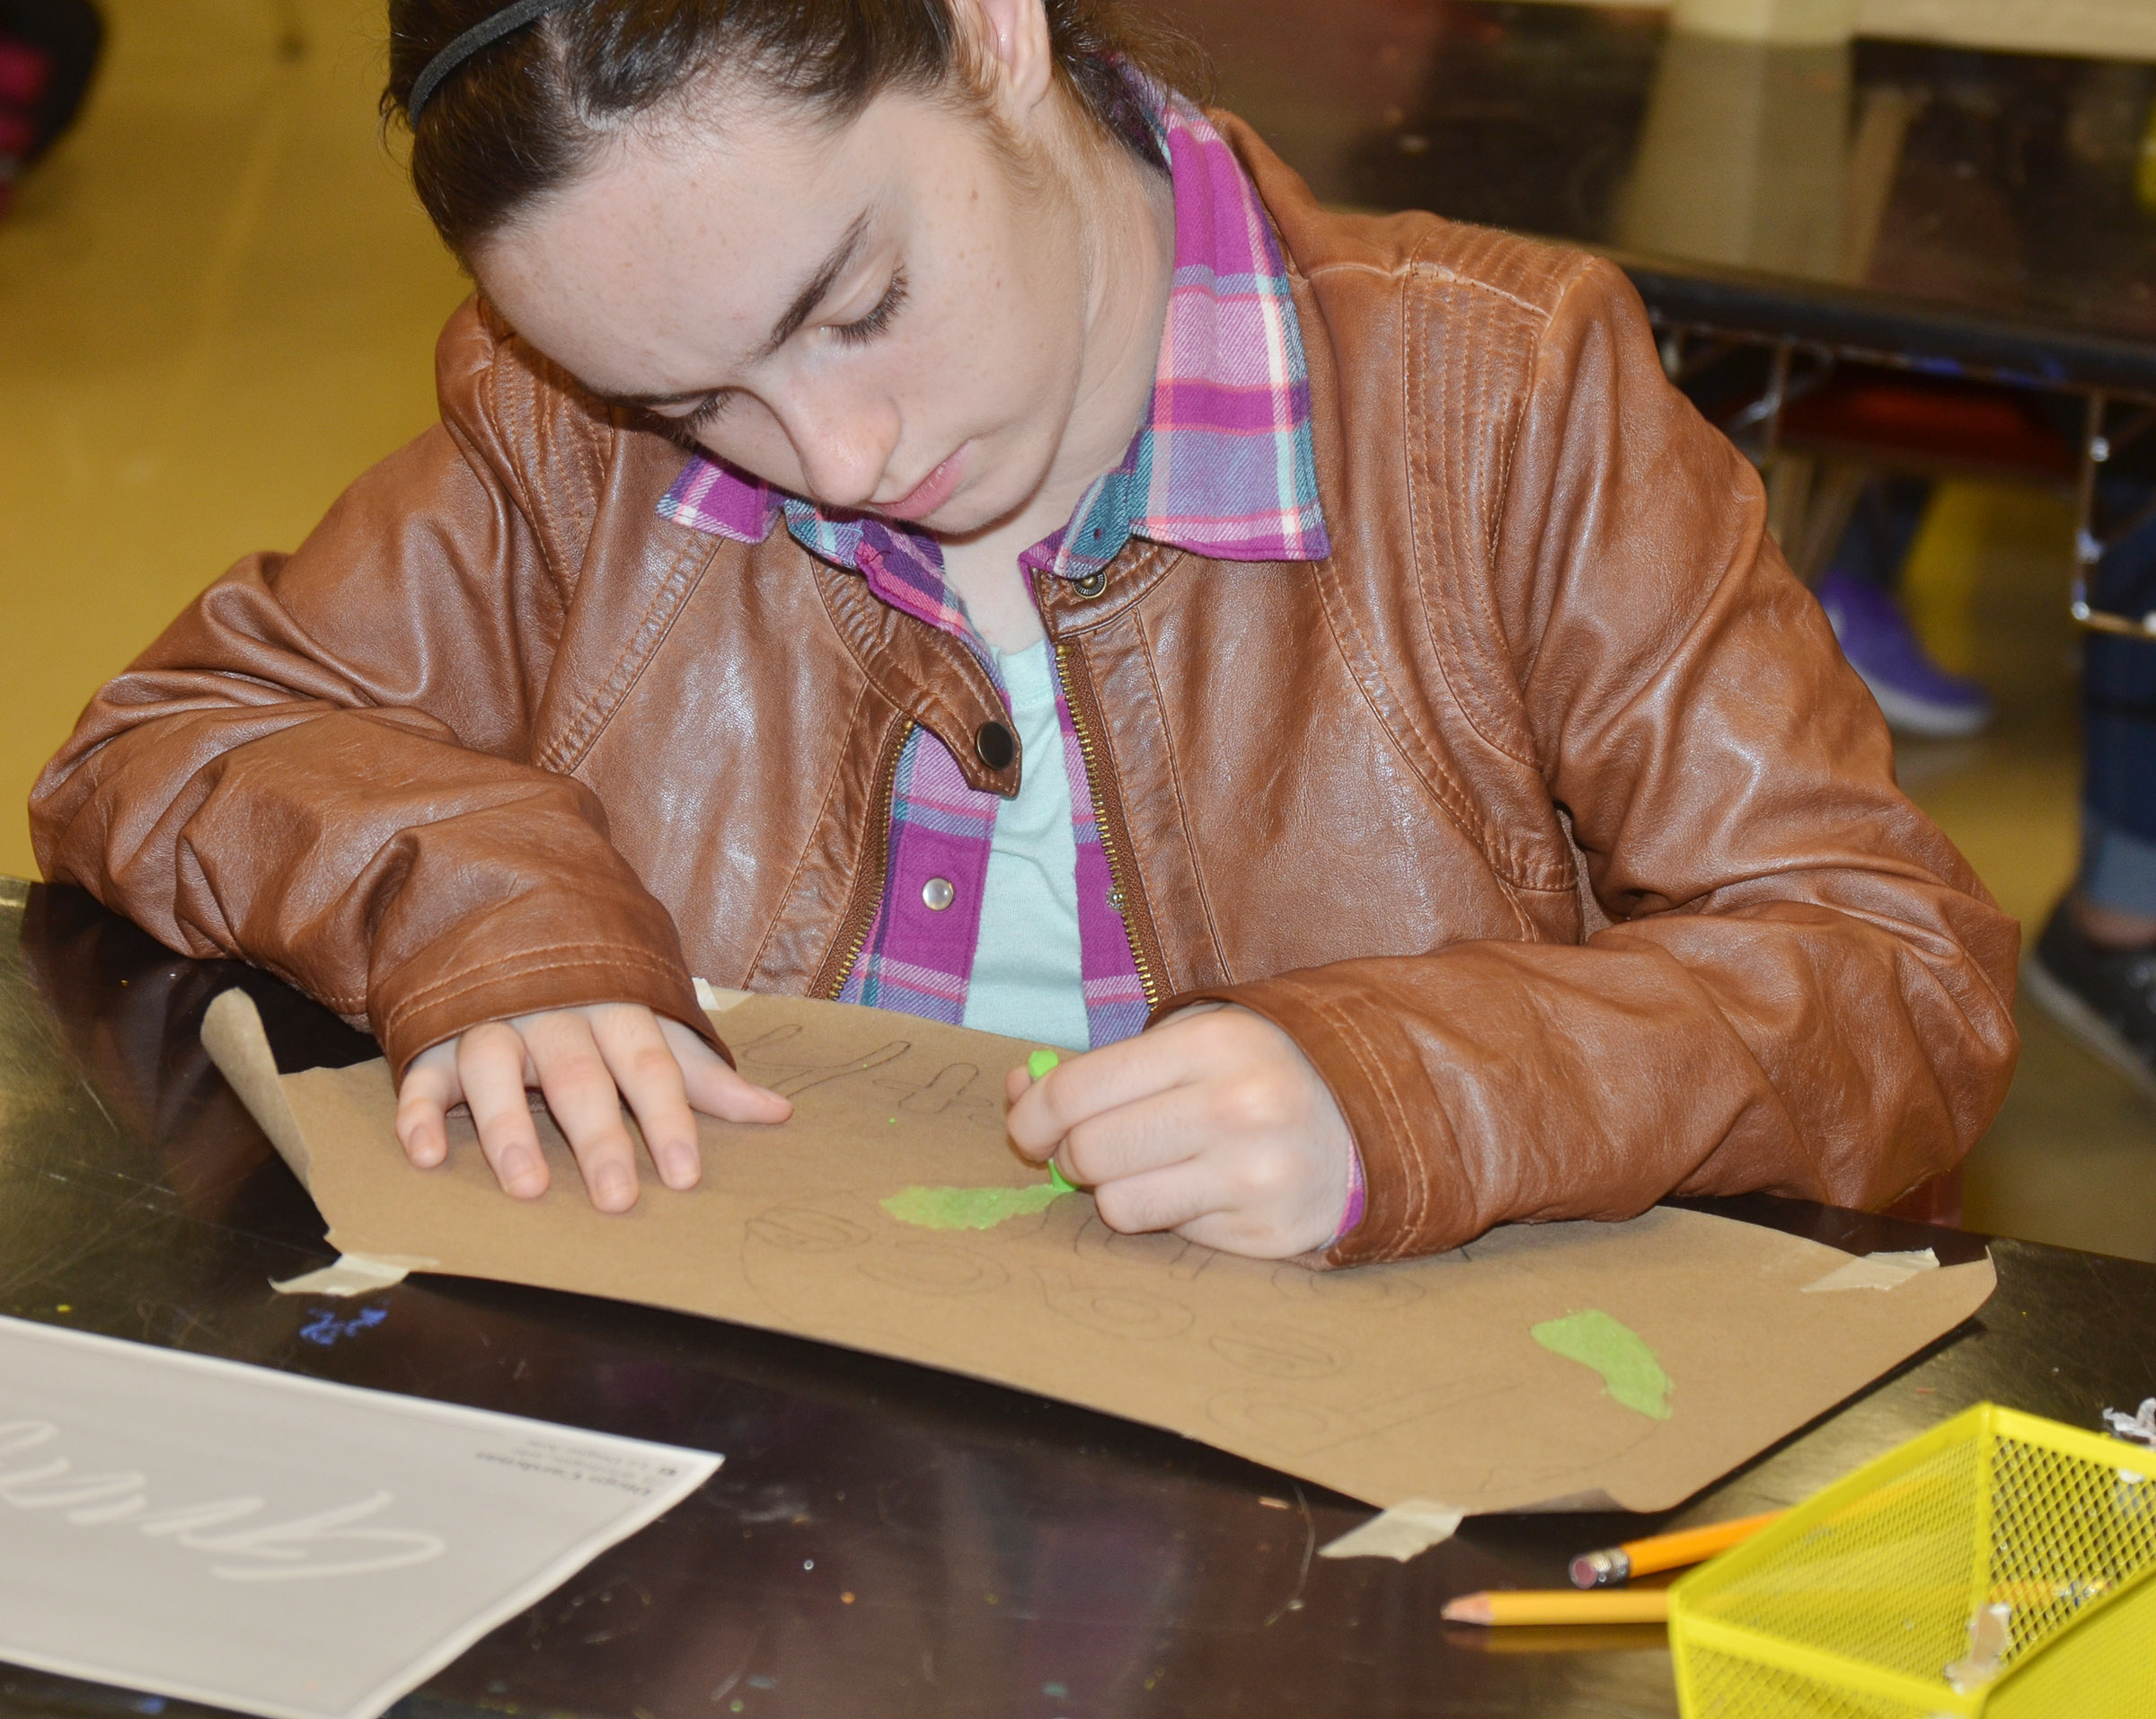 CHS sophomore Jewell Cox uses oil pastels to add color to her graffiti-style art.